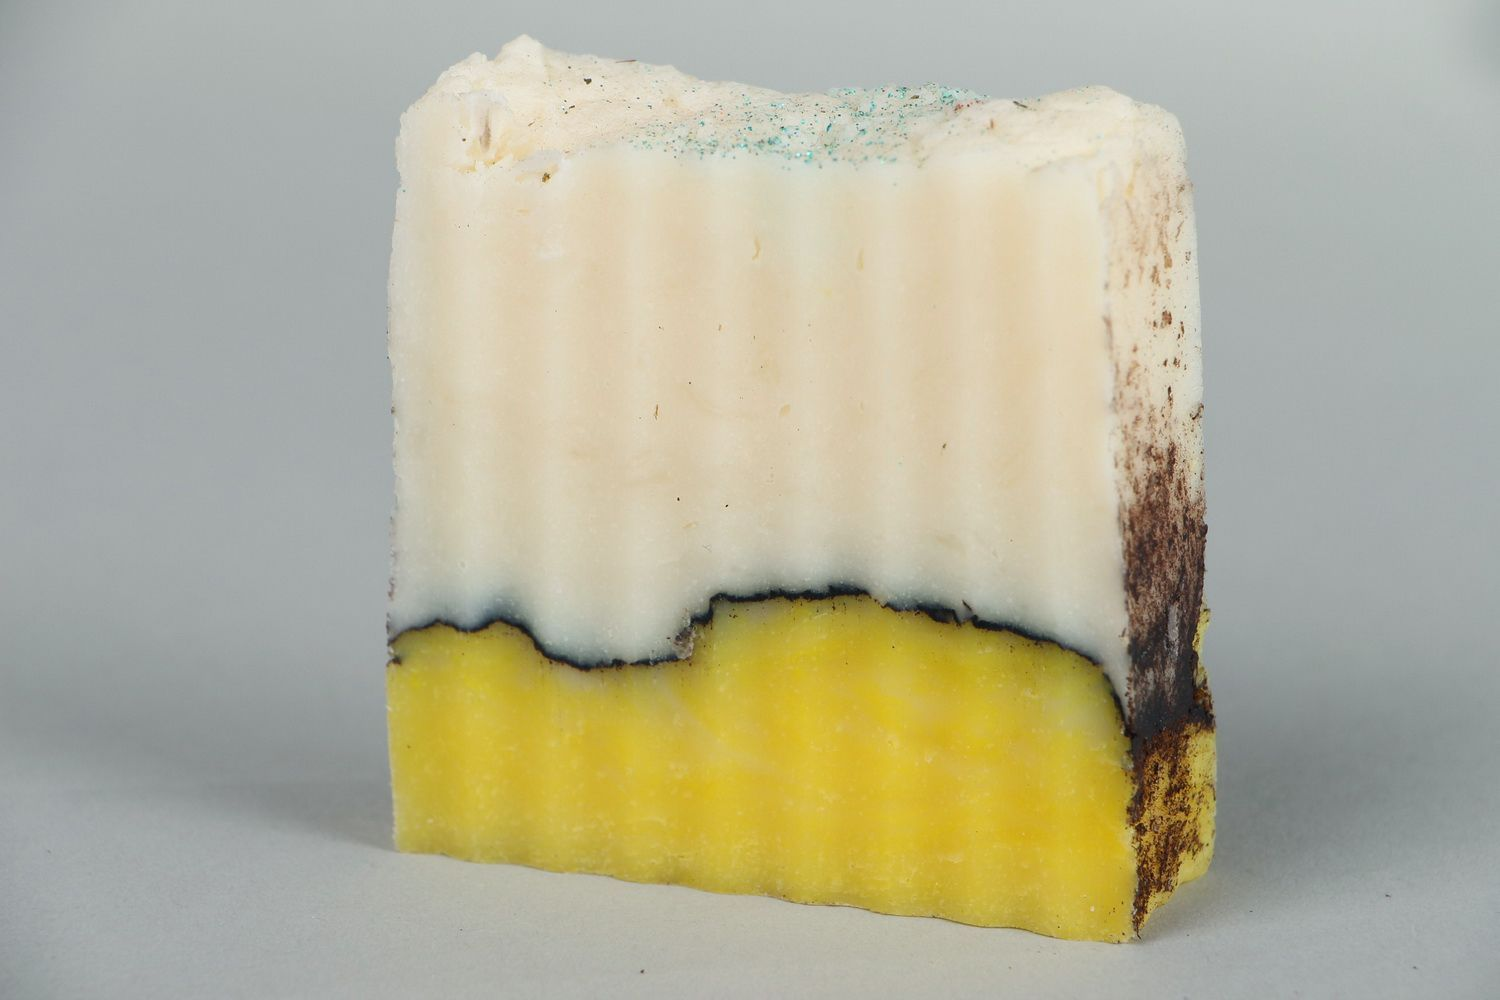 Soap with natural oils photo 1